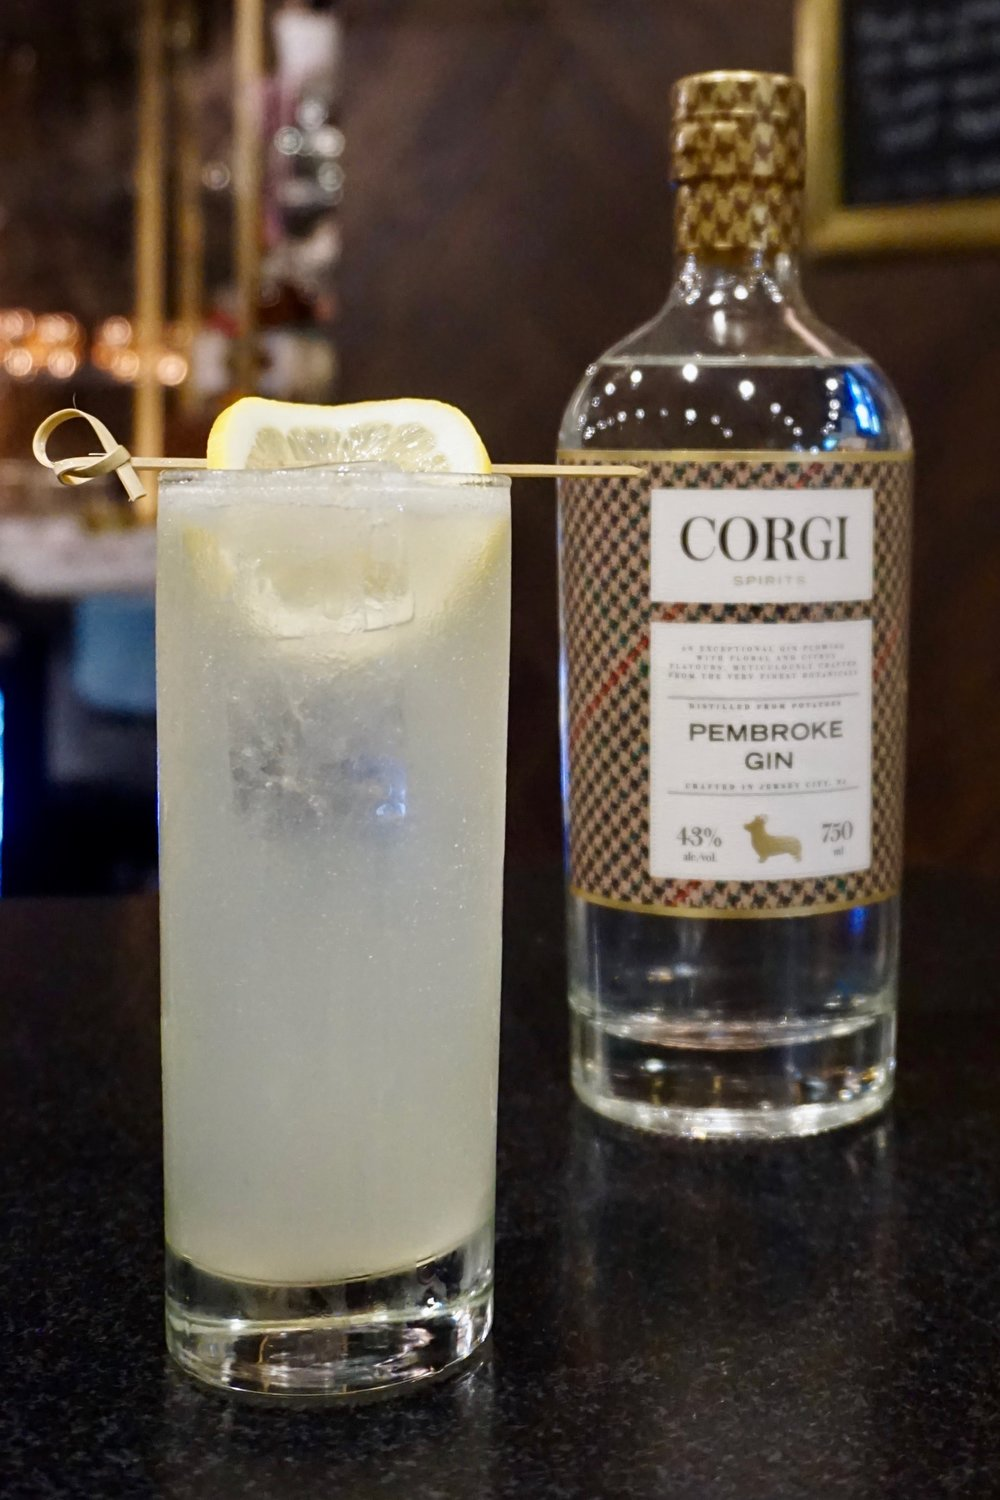 TOM COLLINS   1.5oz Corgi Spirits Pembroke Gin  0.75oz fresh lemon juice  0.75oz simple syrup (1 part sugar : 1 part water)  Club soda  Lemon wheel for garnish    Fill a shaker with ice, add gin, lemon juice, syrup and shake vigorously. Strain into a Collins glass over fresh ice and top with club soda. Garnish with lemon wheel.